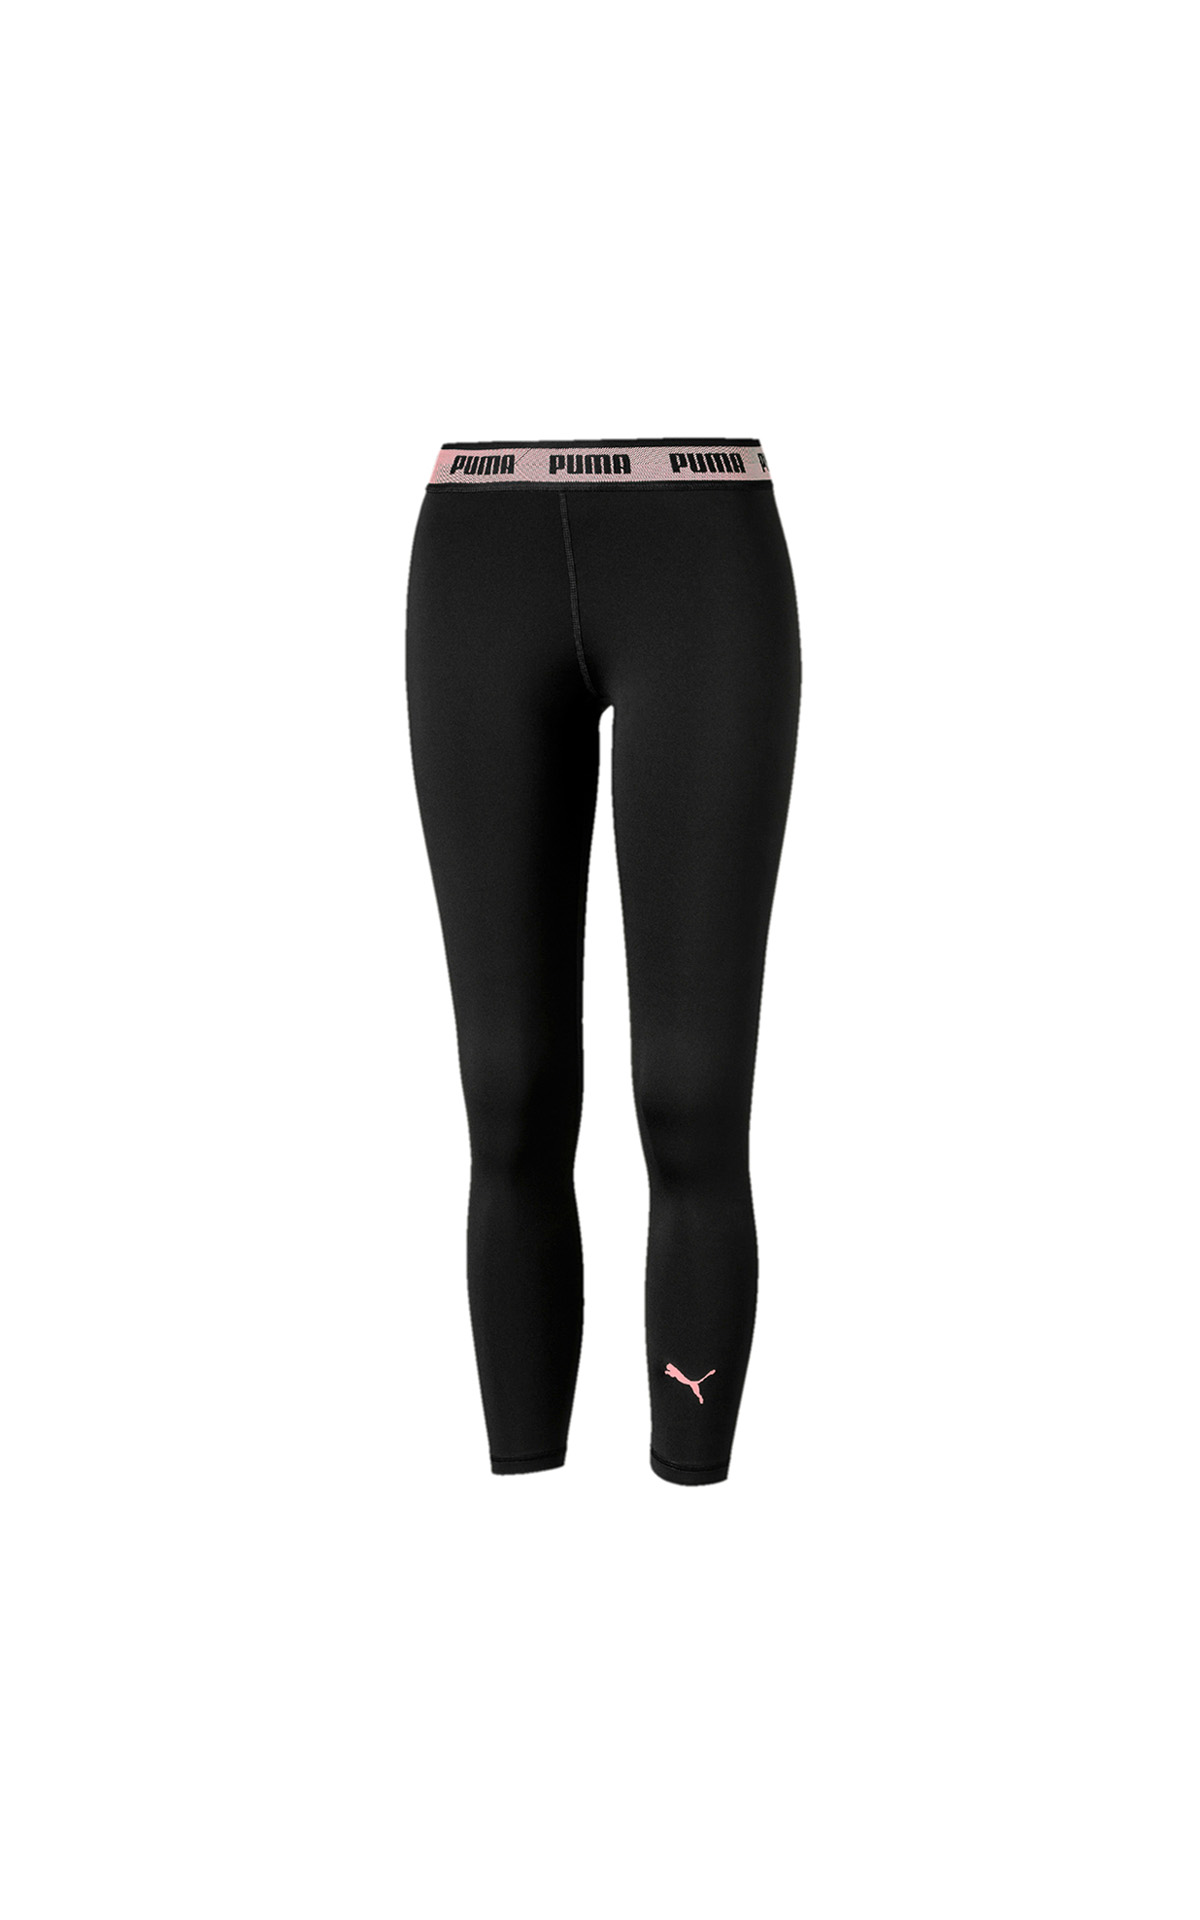 PUMA soft sports leggings at The Bicester Village Shopping Collection